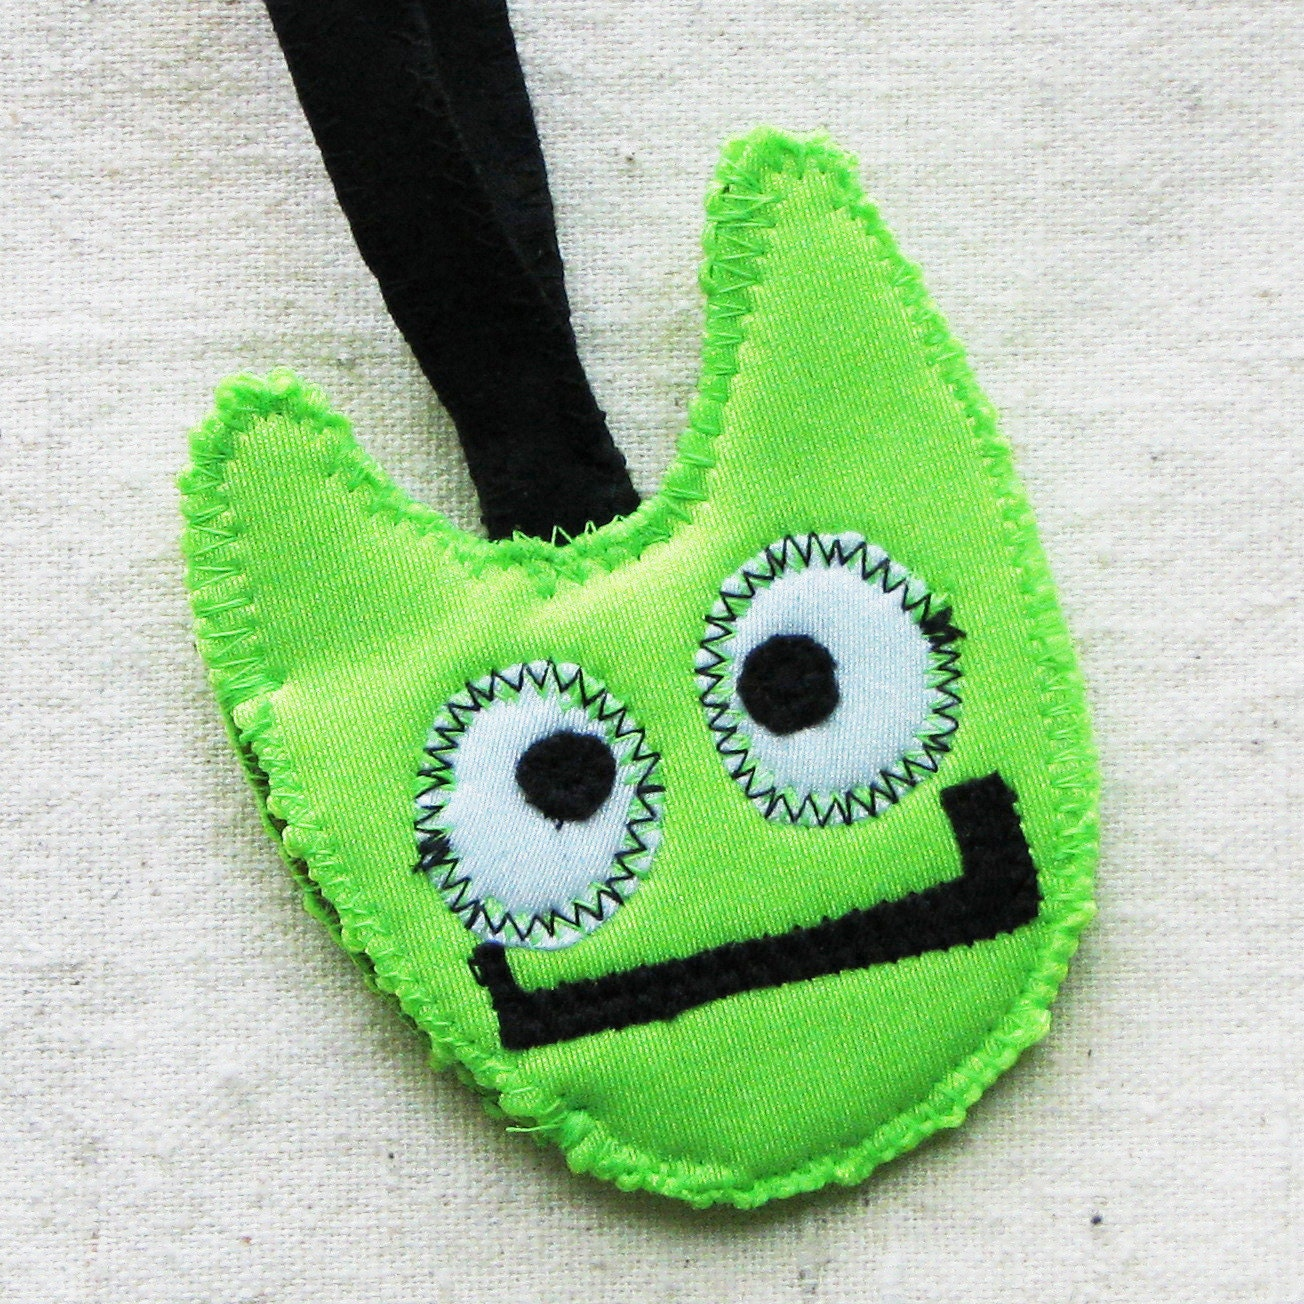 Kids luggage tag - whimsical monster in neon bright lime green fabric